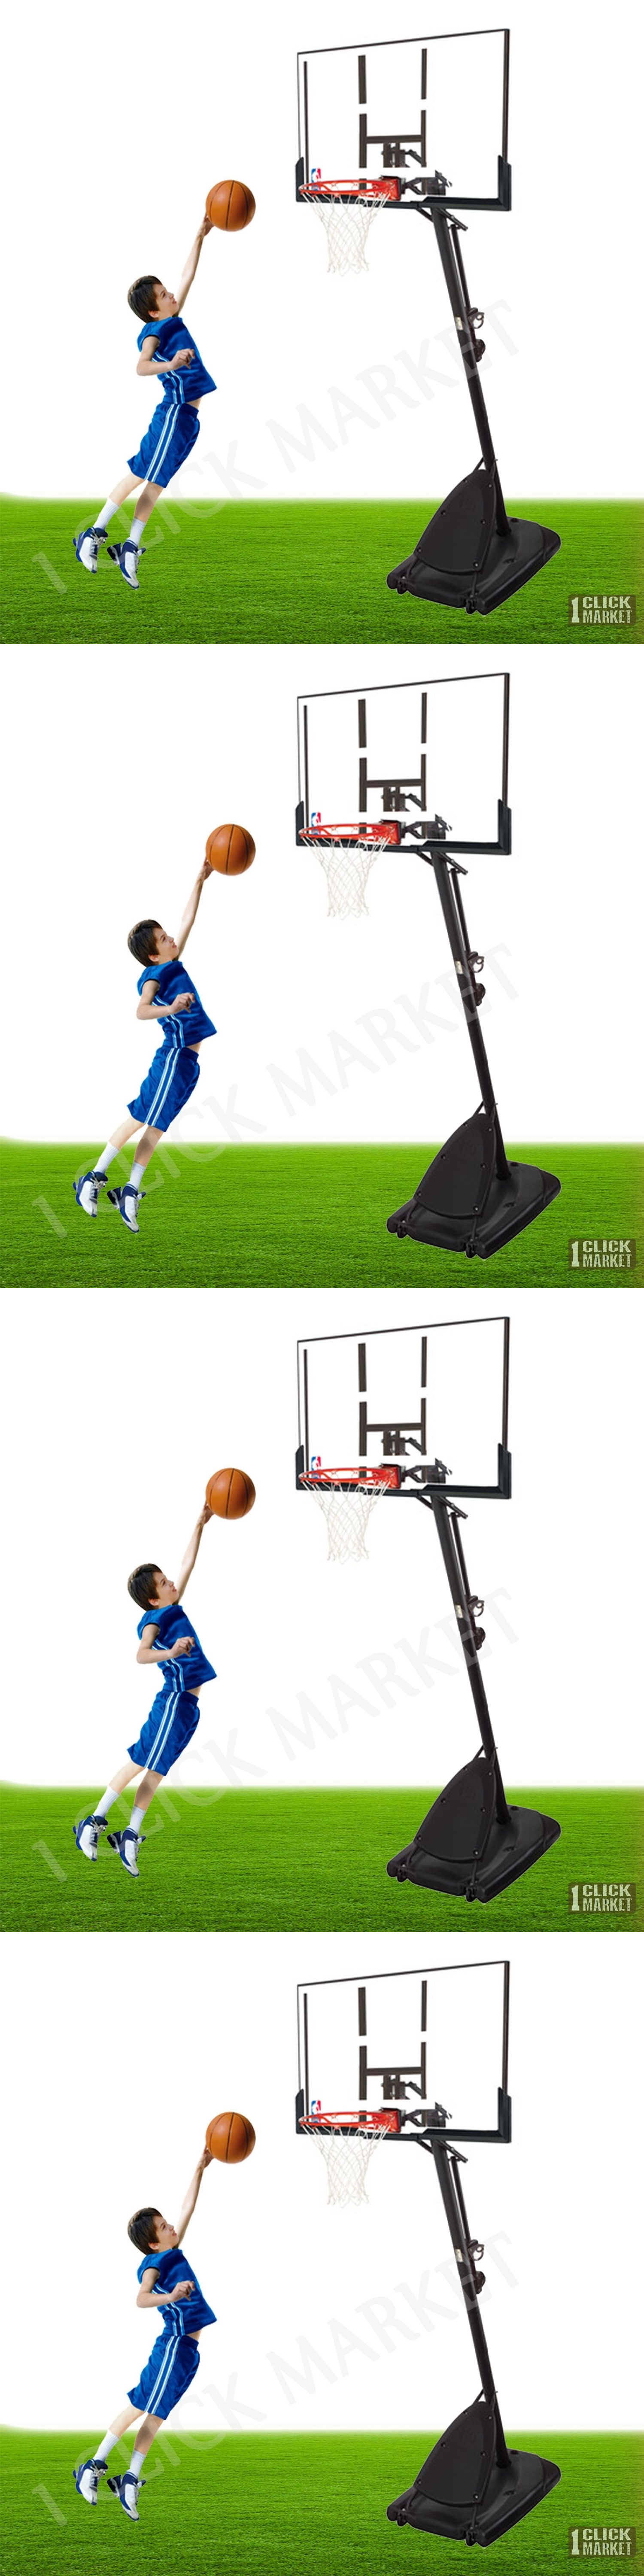 backboard systems 21196 54 portable basketball hoop outdoor